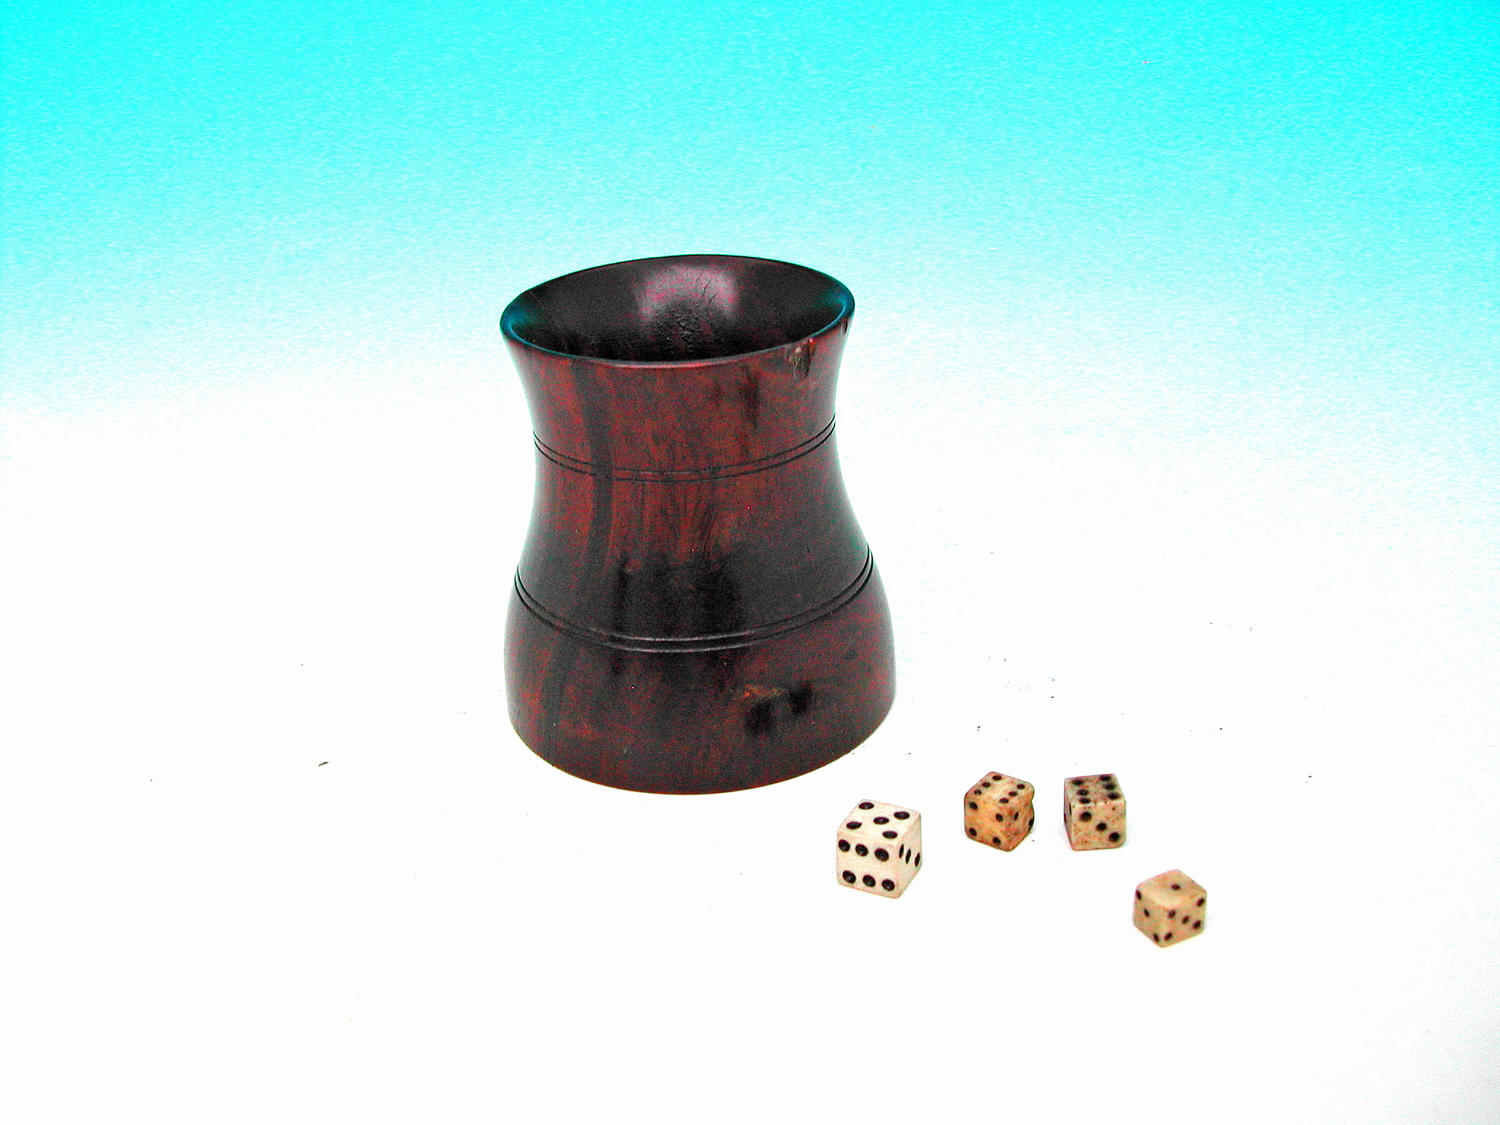 19thc Antique Treen Lignum Vitae Dice Shaker and Dice .  English  . C1